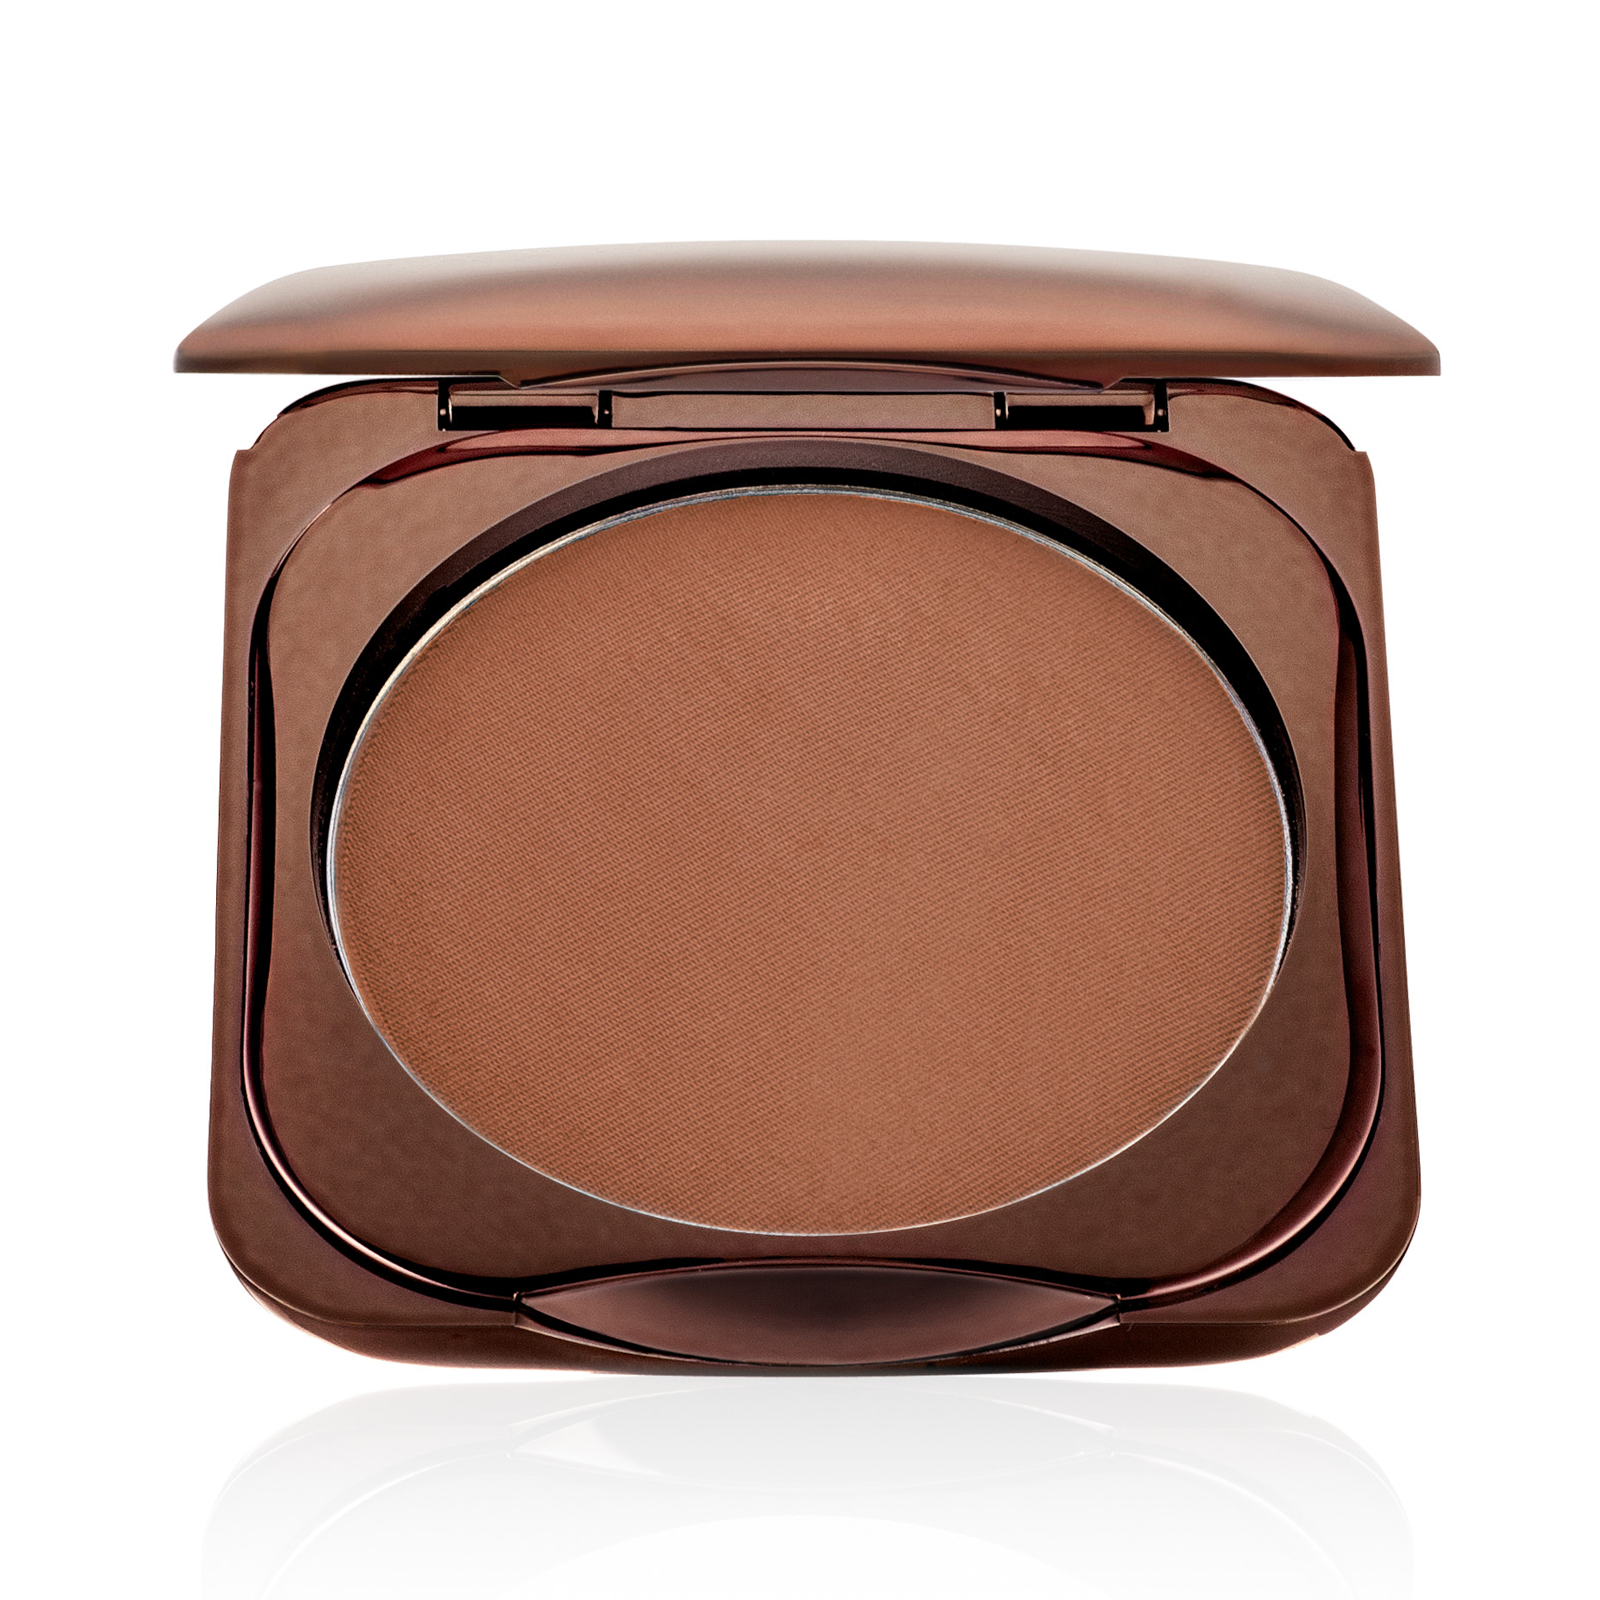 Fashion Fair Oil Control Pressed Powder 11.3g Walnut